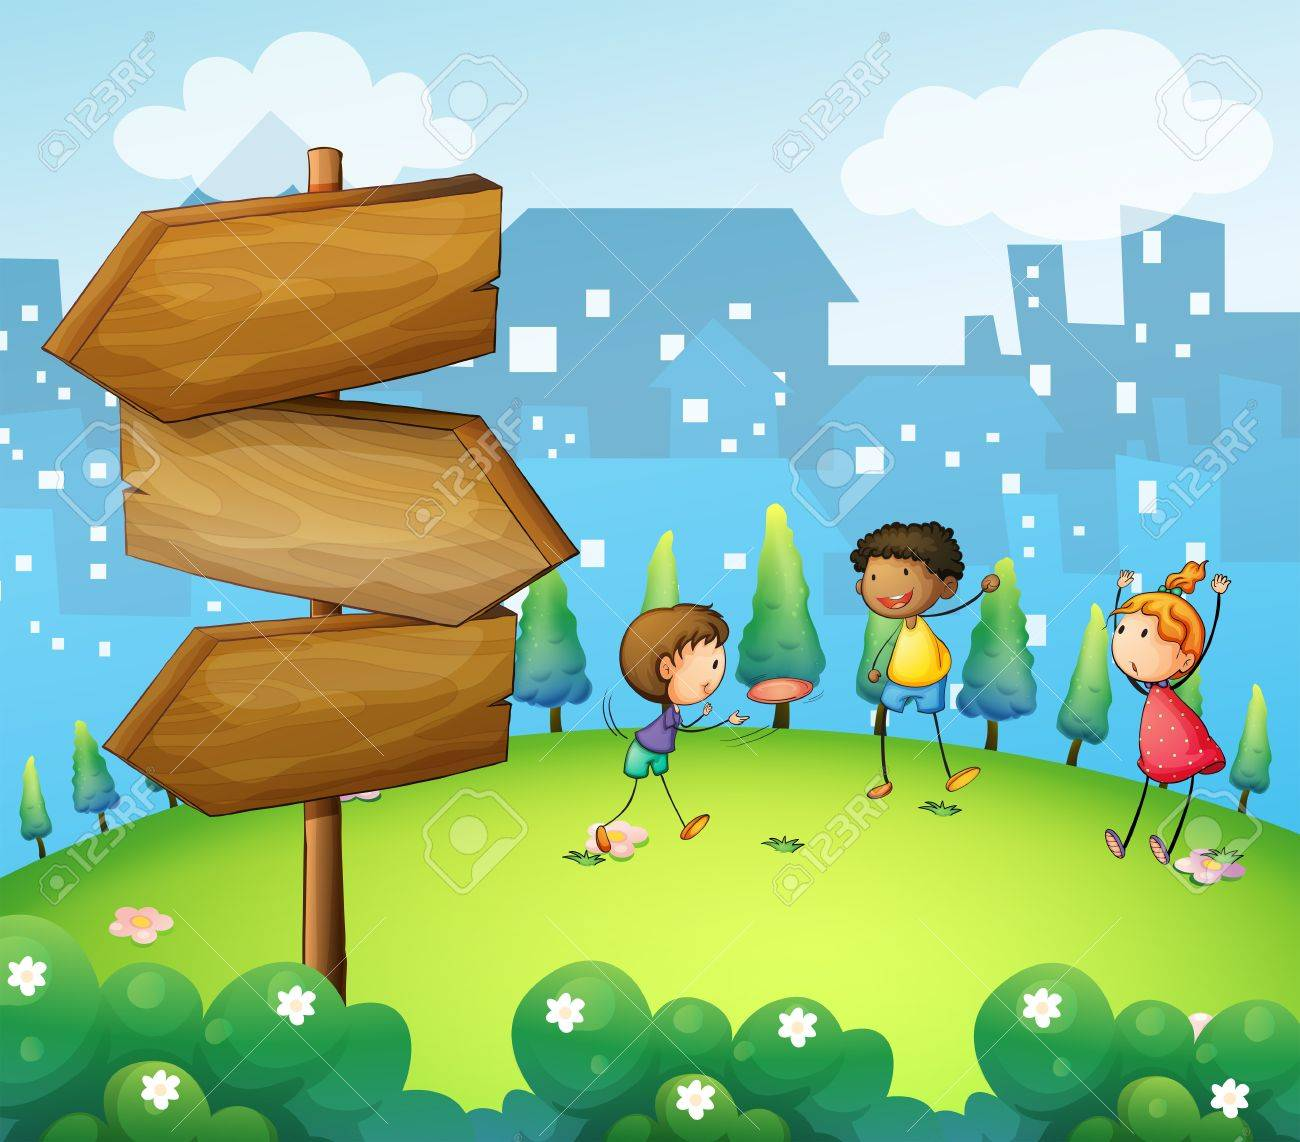 Clip art 187 board games clip art - Clip Art Illustration Of The Three Kids Playing In The Hill With Wooden Arrowboard Illustration